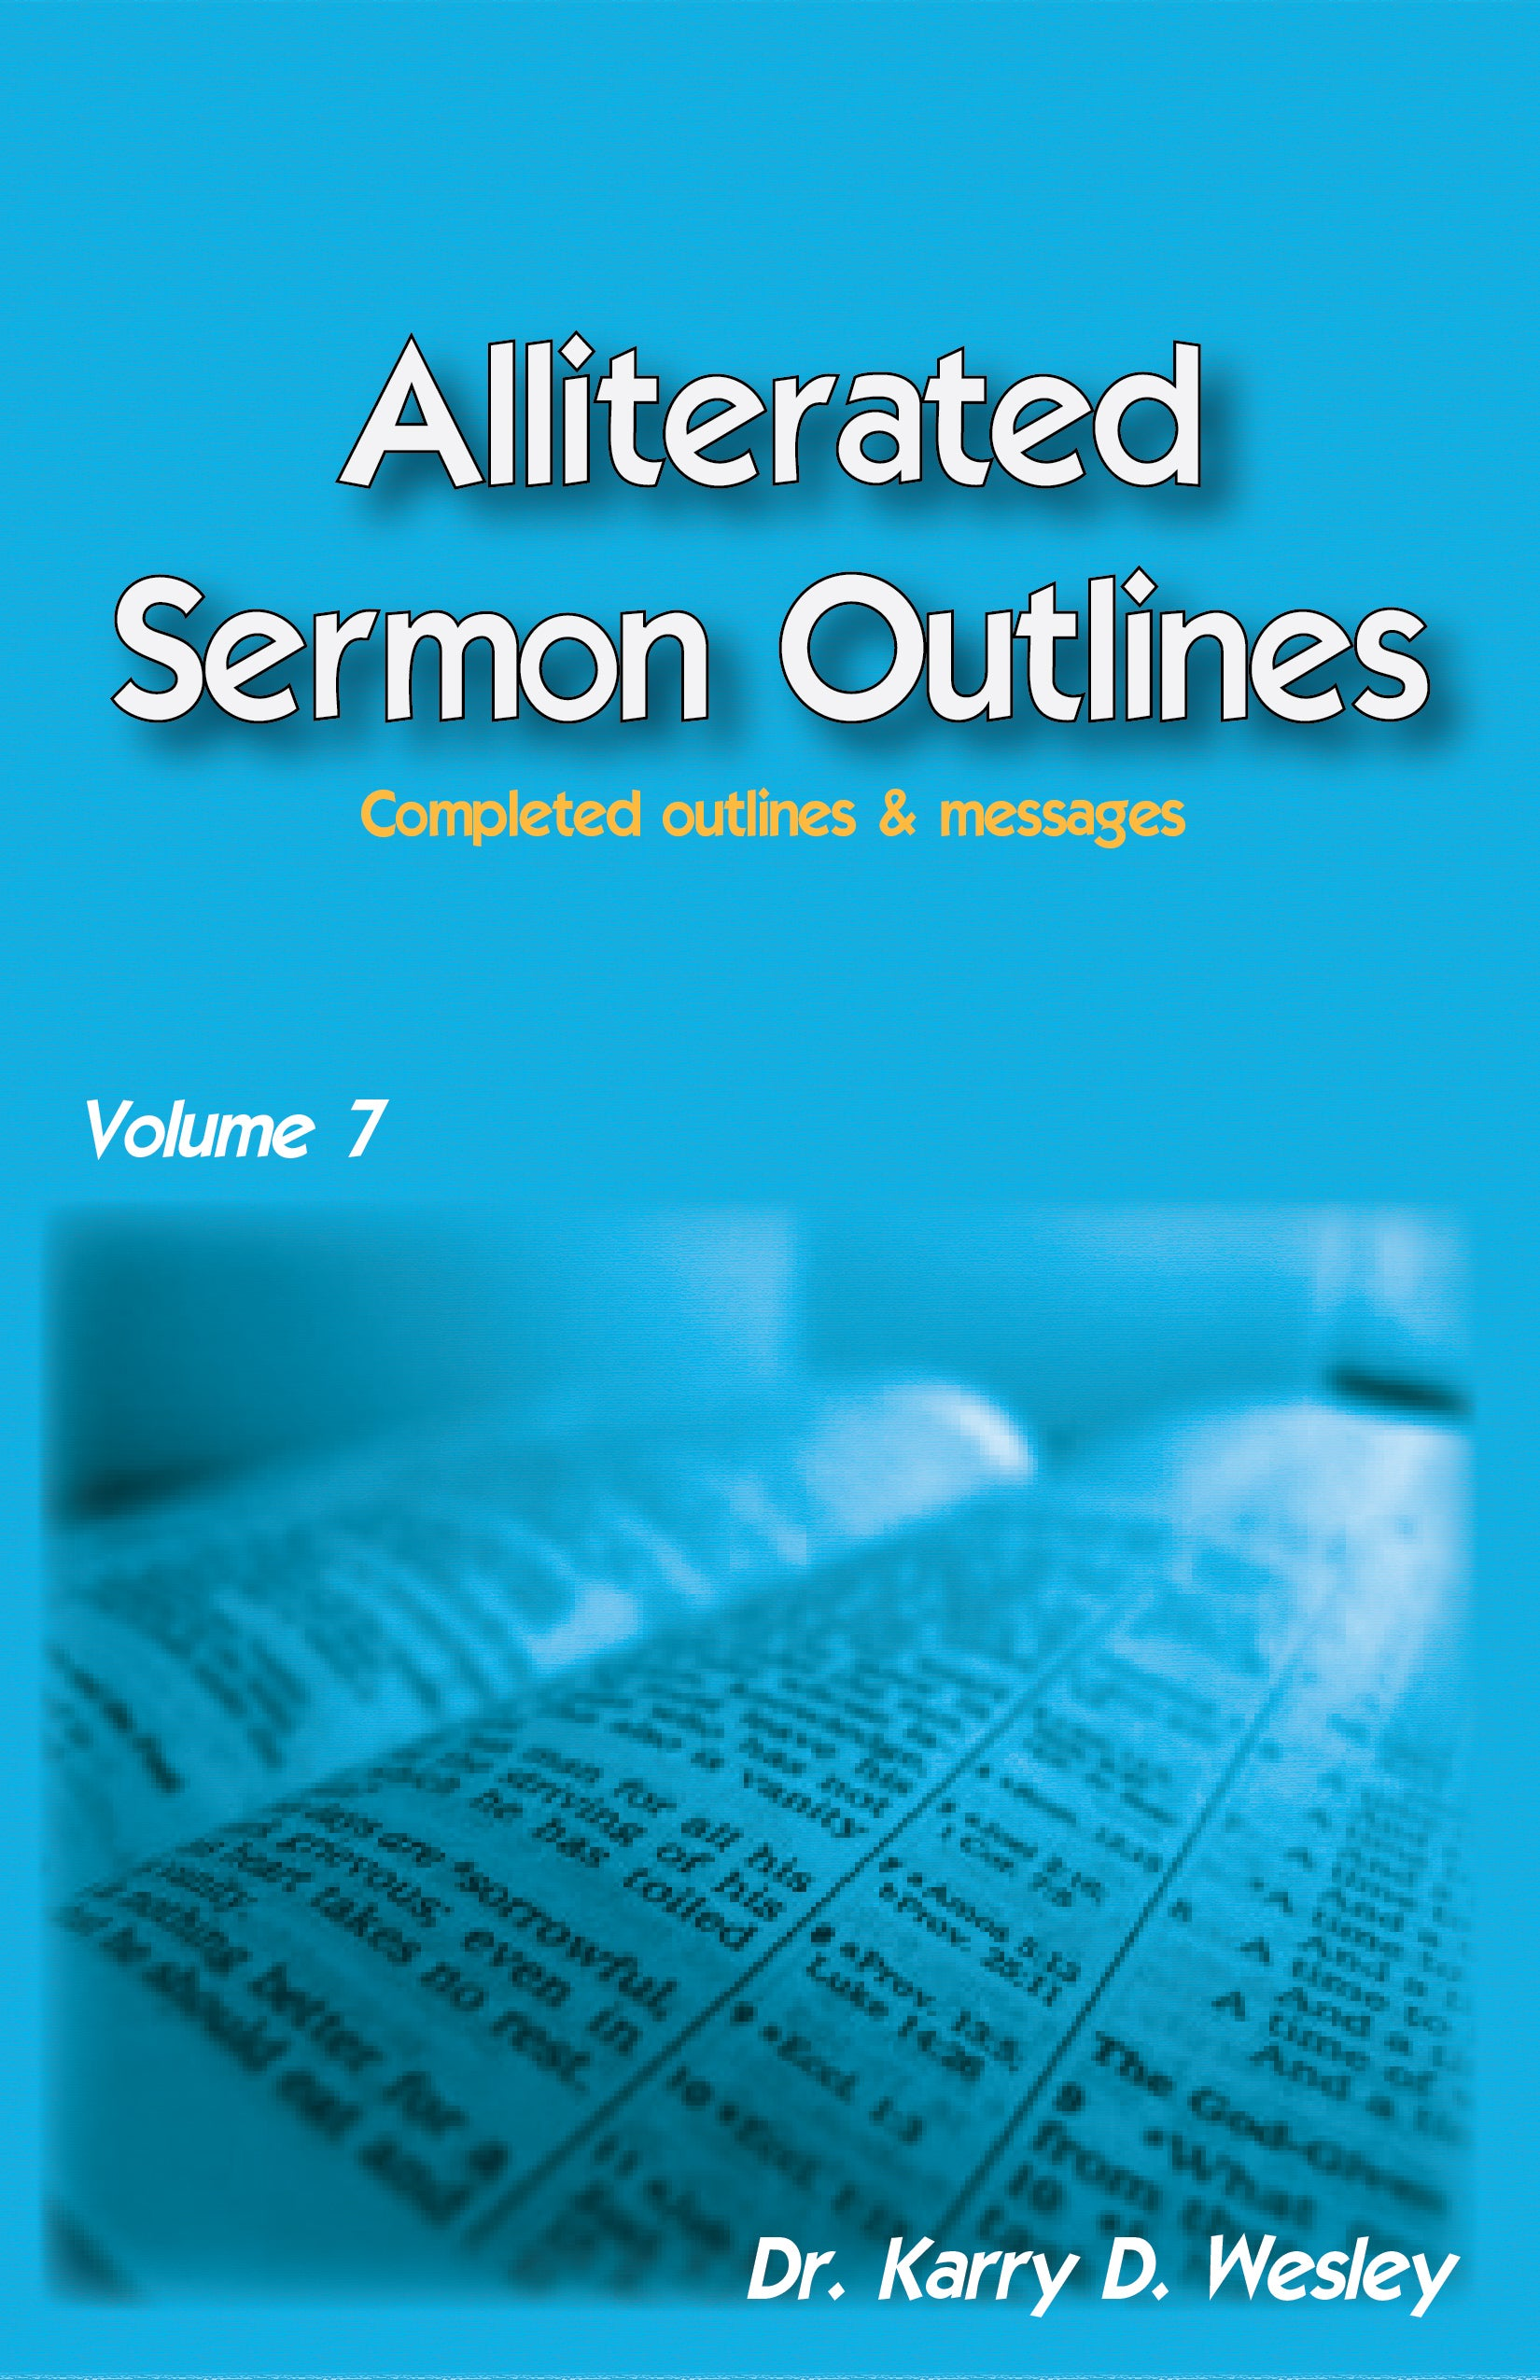 Alliterated Sermons - Volume 7